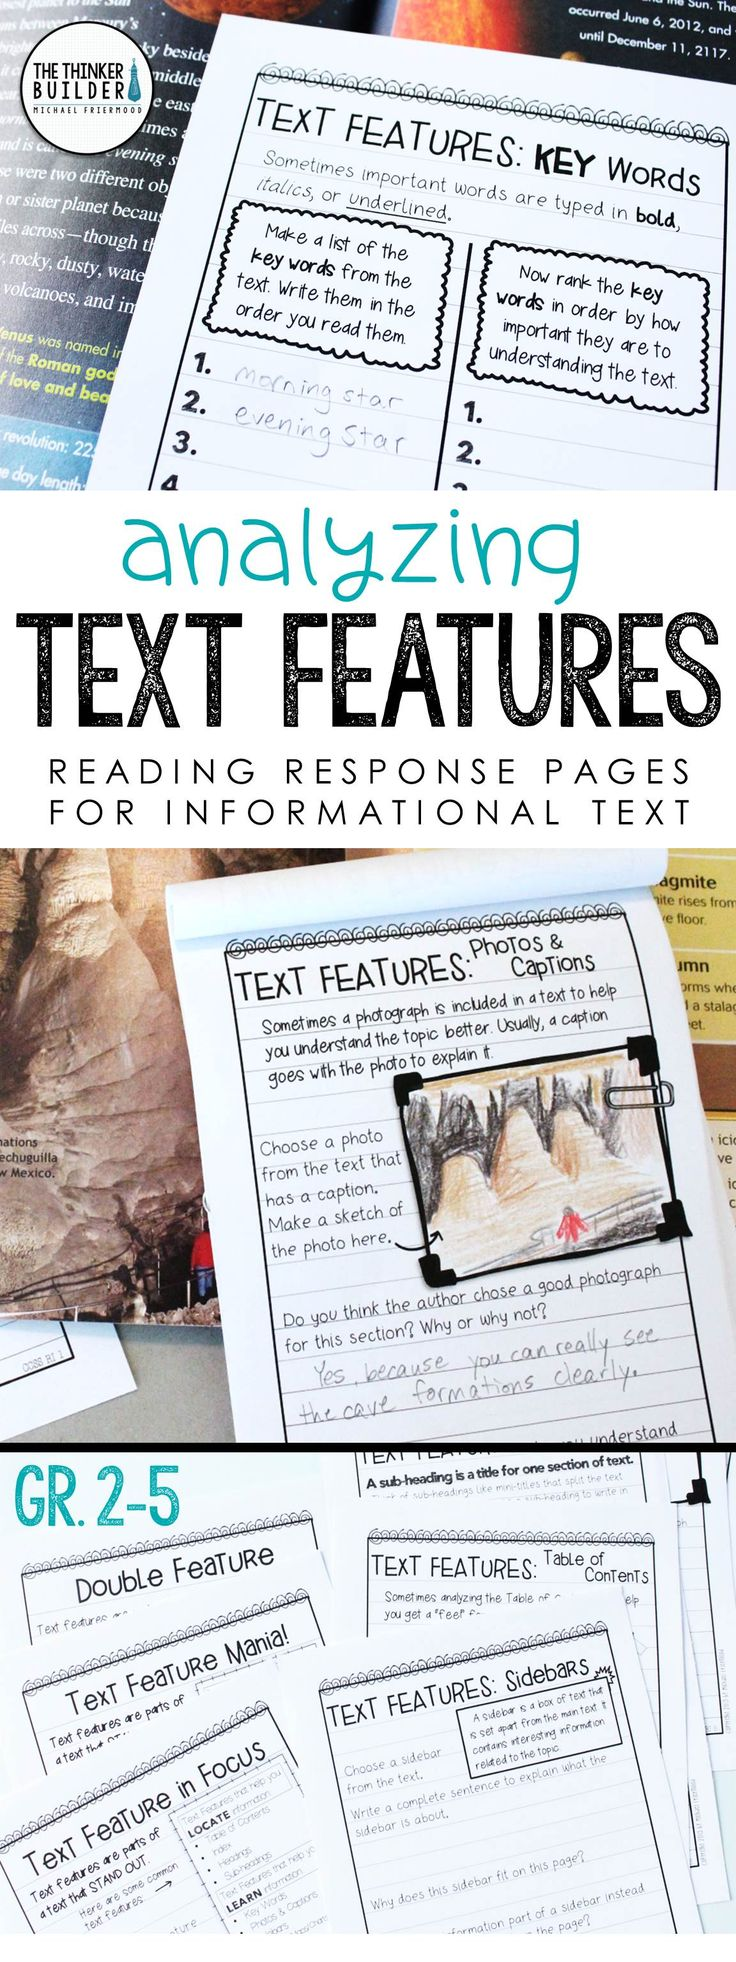 	Help students analyze text features within informational texts with these handy reading response pages, designed in an engaging notebook format. Differentiated at three levels. Also includes pages on text structures, locating important facts, summarizing & synthesizing, vocabulary, research, and more! (Gr 2-5) $